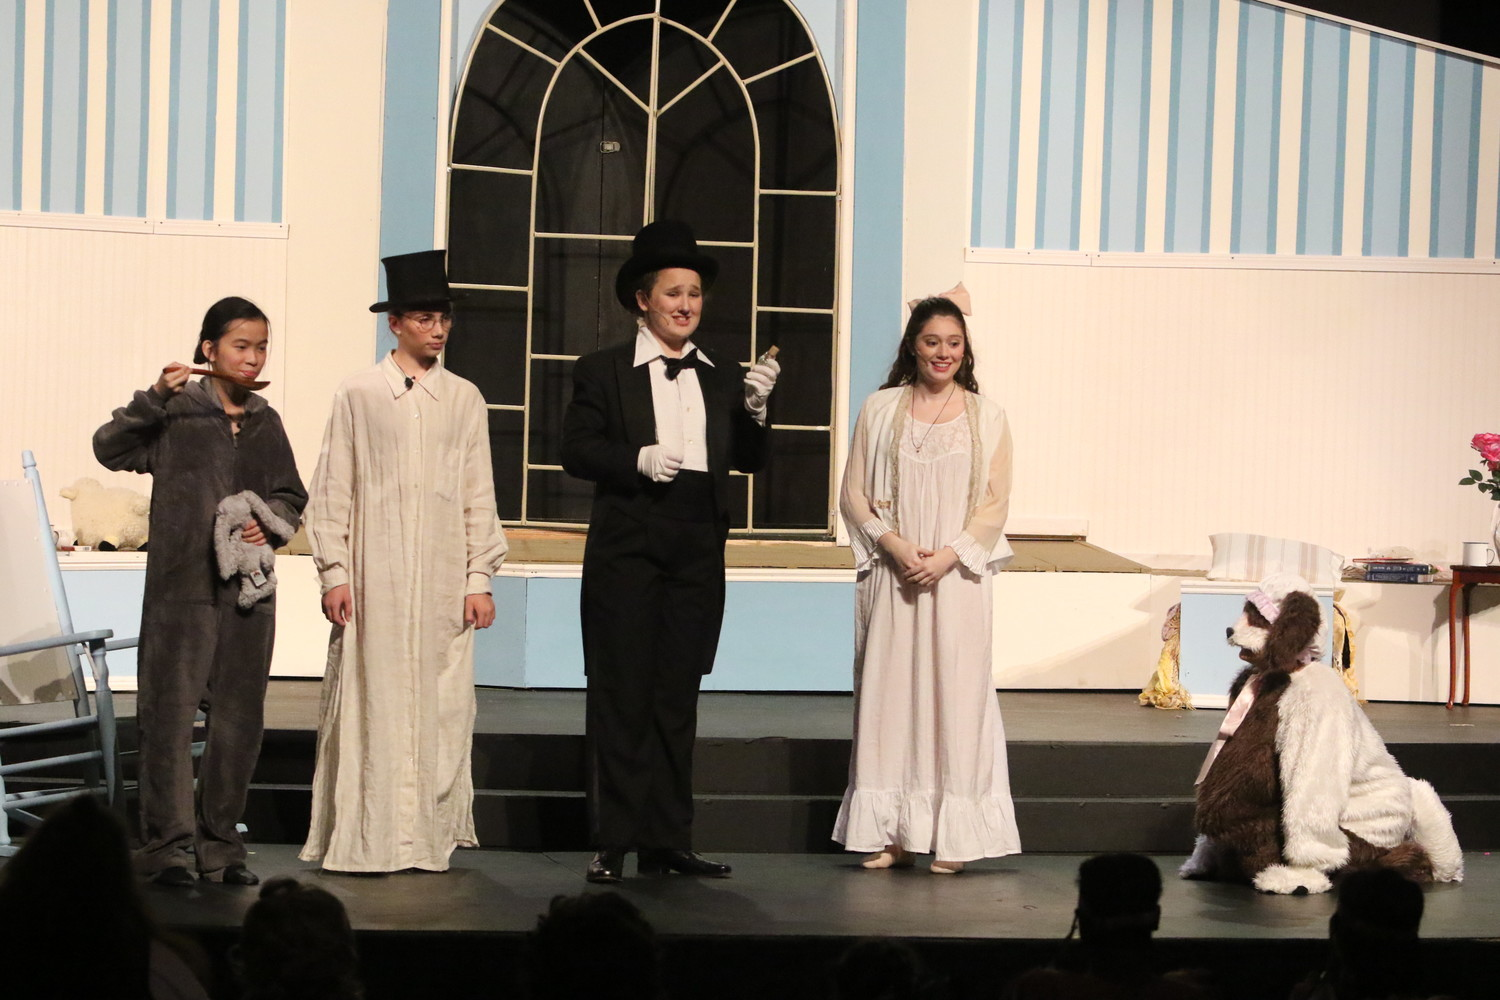 Jia Weingard, Sophia Bianchi, Caitlin Connallon, Grace Farrow, and Gabriella Moreira as Michael Darling, John Darling, Mr. Darling, Wendy, and Nana the dog Rehoboth, MA / North Kingstown / Cranston / Providence / Rehoboth, MA